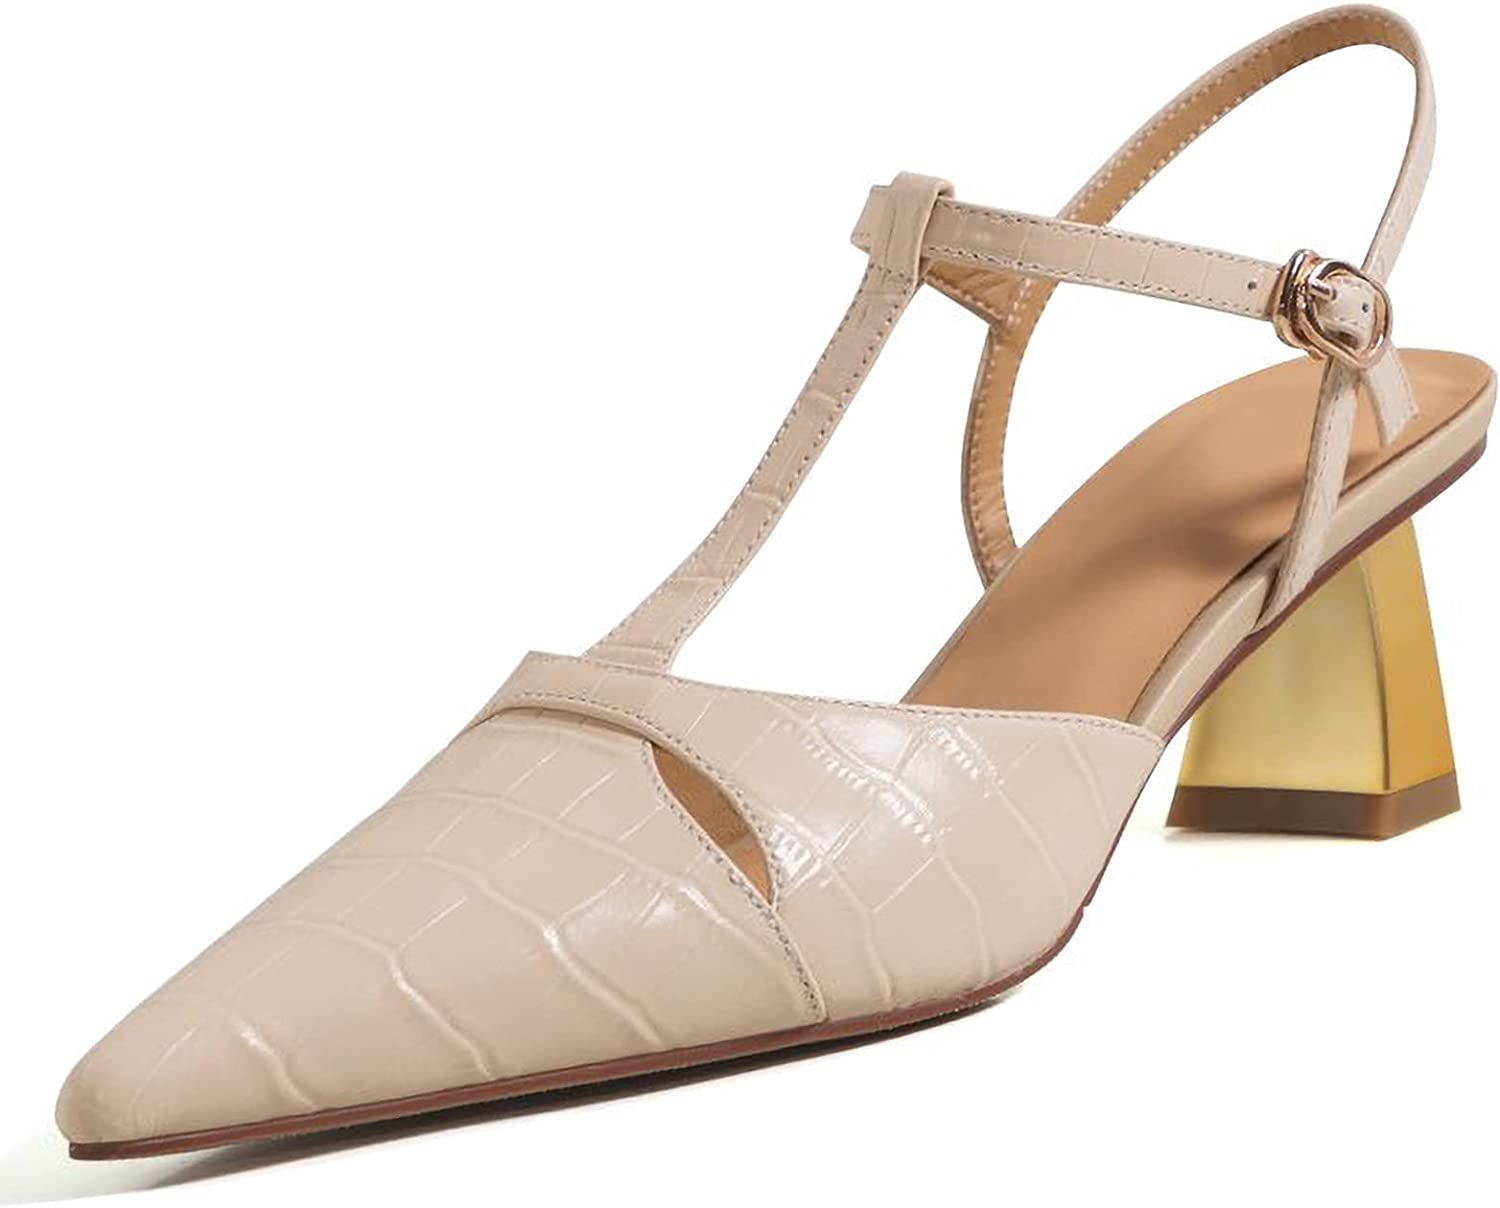 Max 56% OFF KJHKT Women's Max 74% OFF Closed Pointed Toe Sum Backless High Sandals Heels